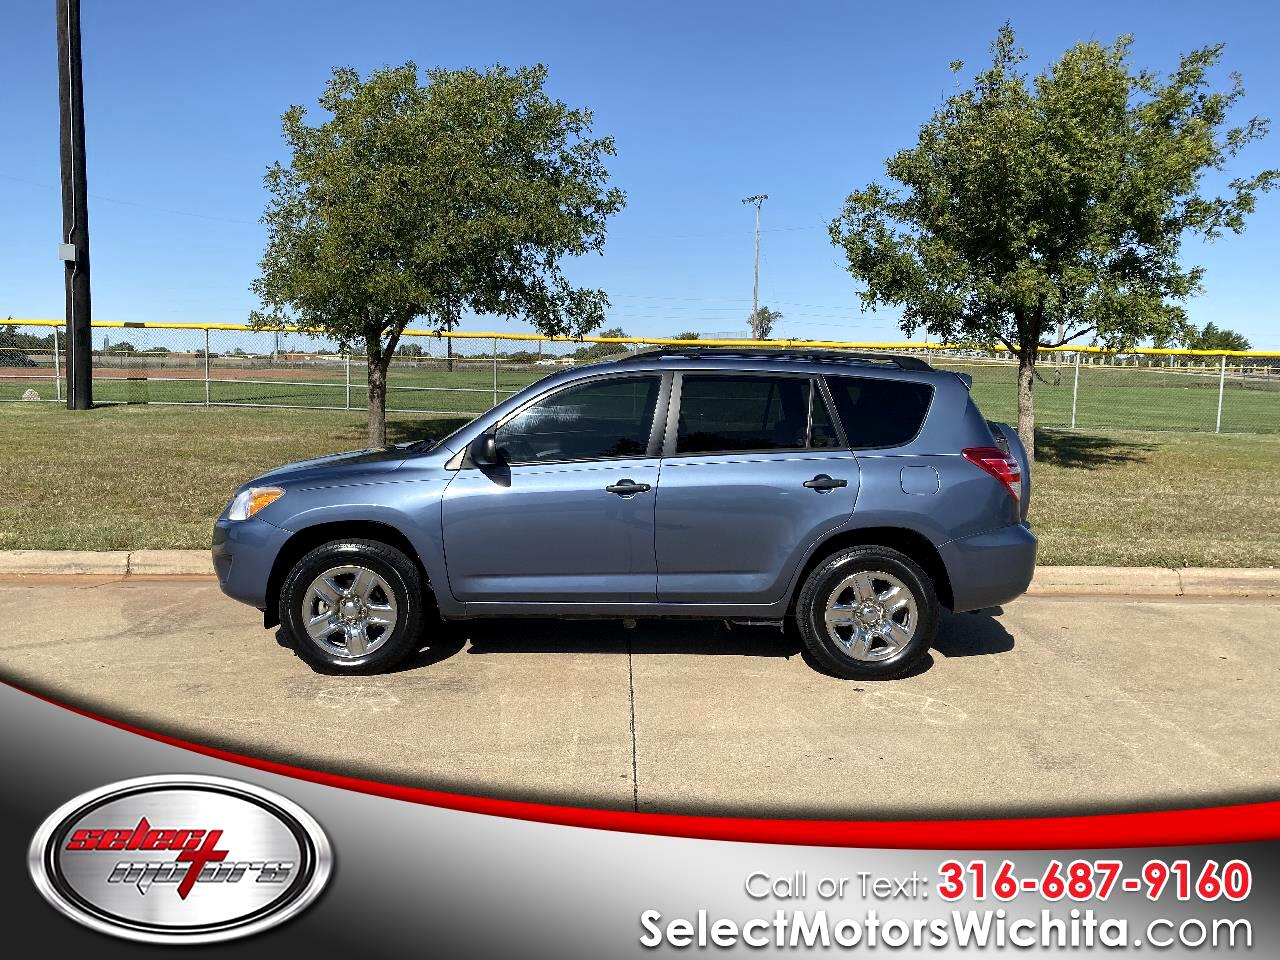 2011 Toyota RAV4 FWD 4dr V6 5-Spd AT (Natl)